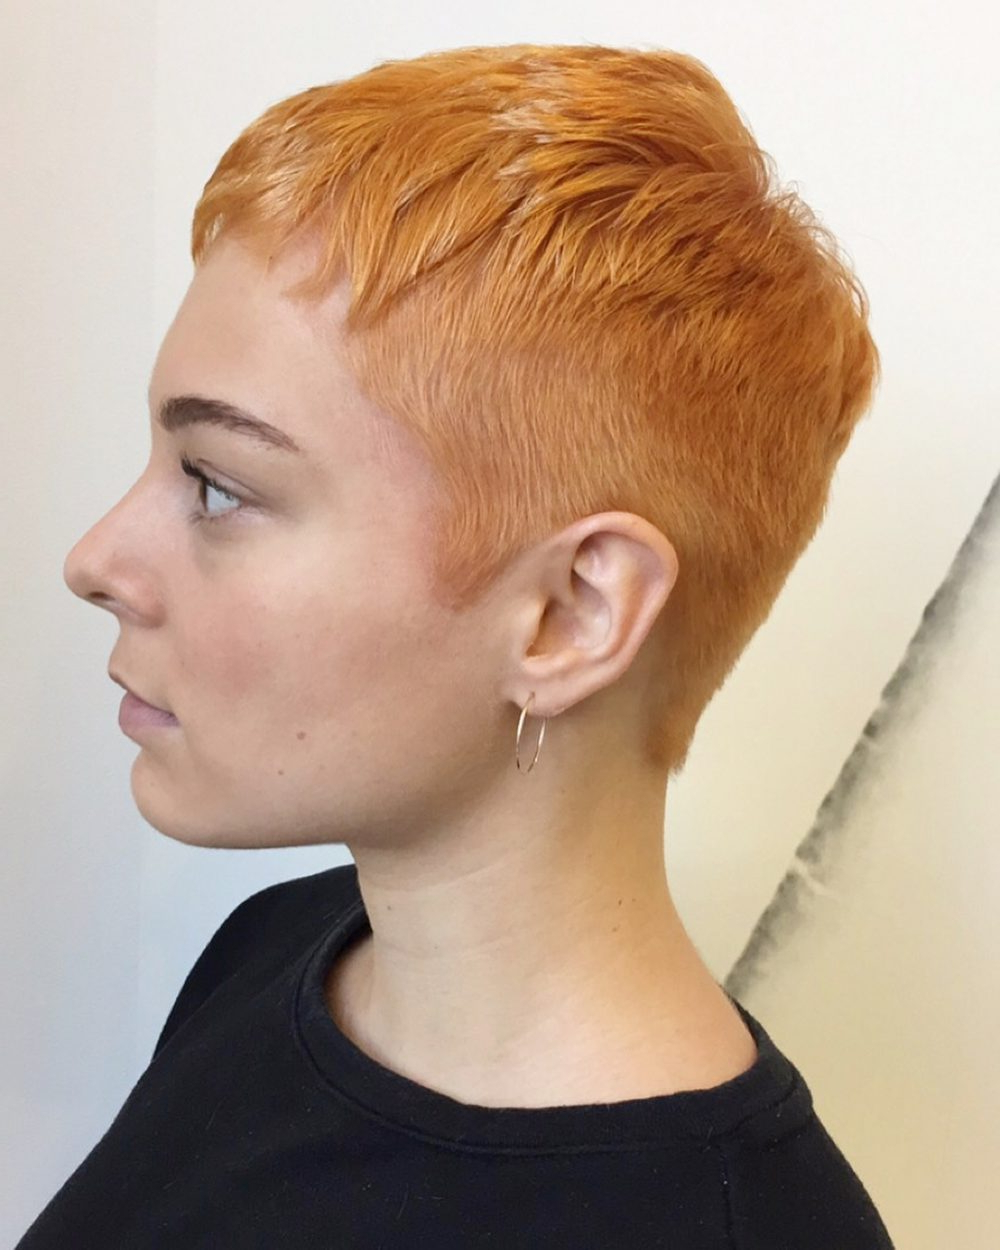 27 Very Short Haircuts You Have To See In 2018 Within Feminine Short Hairstyles For Women (View 3 of 25)